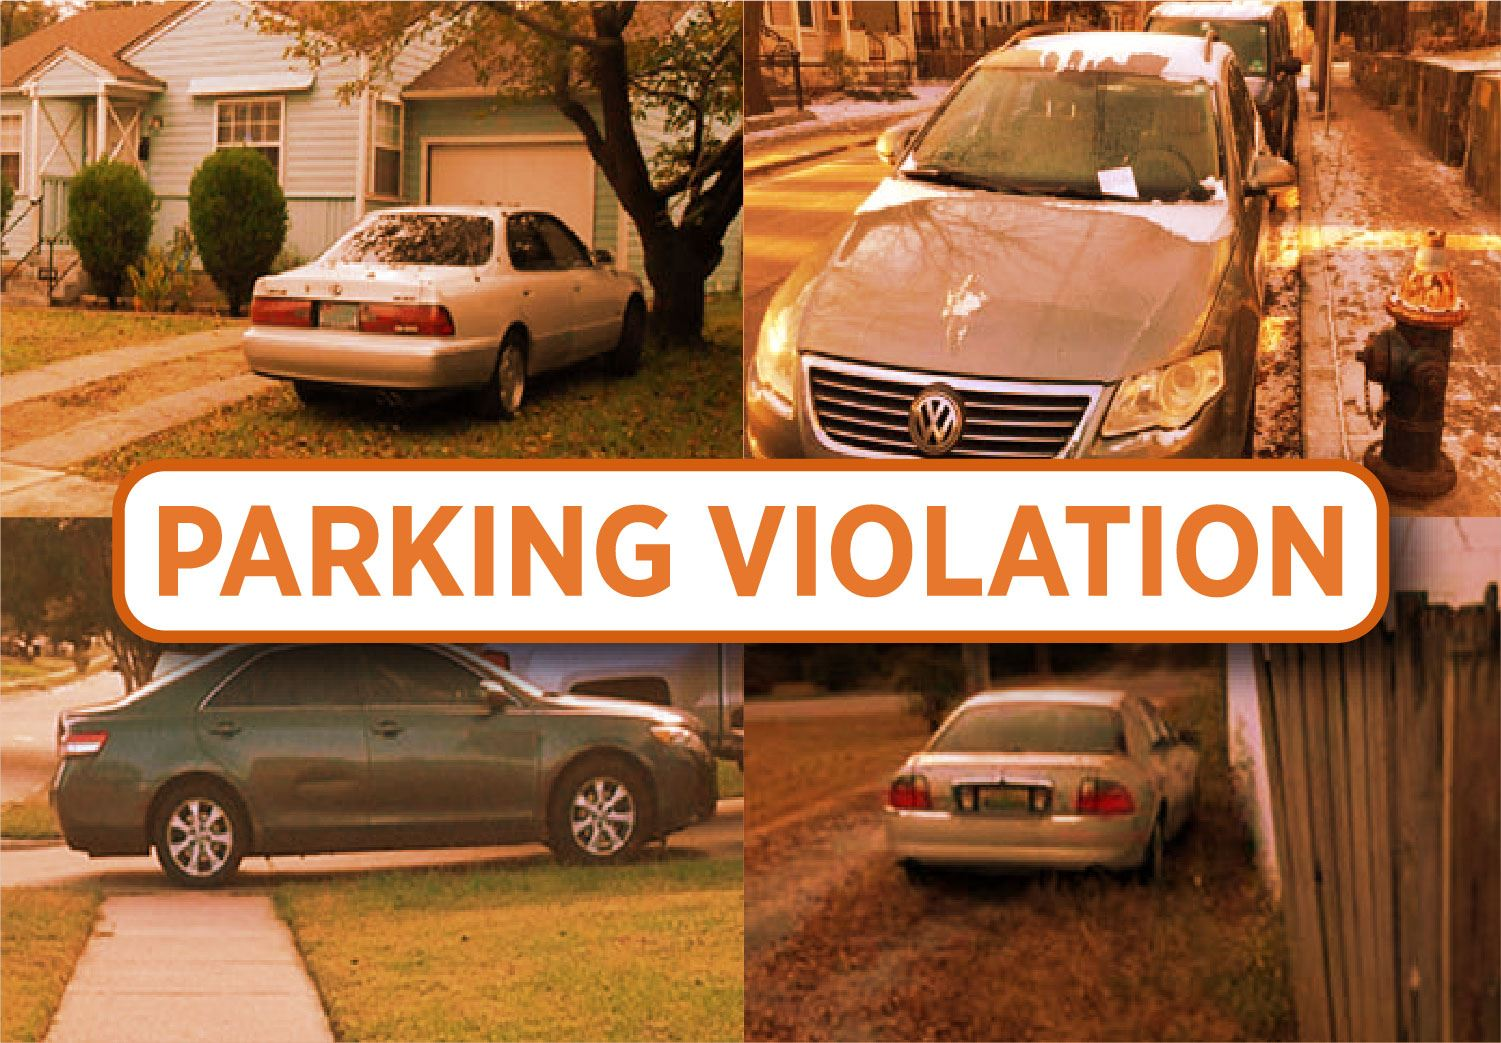 Examples of parking violations